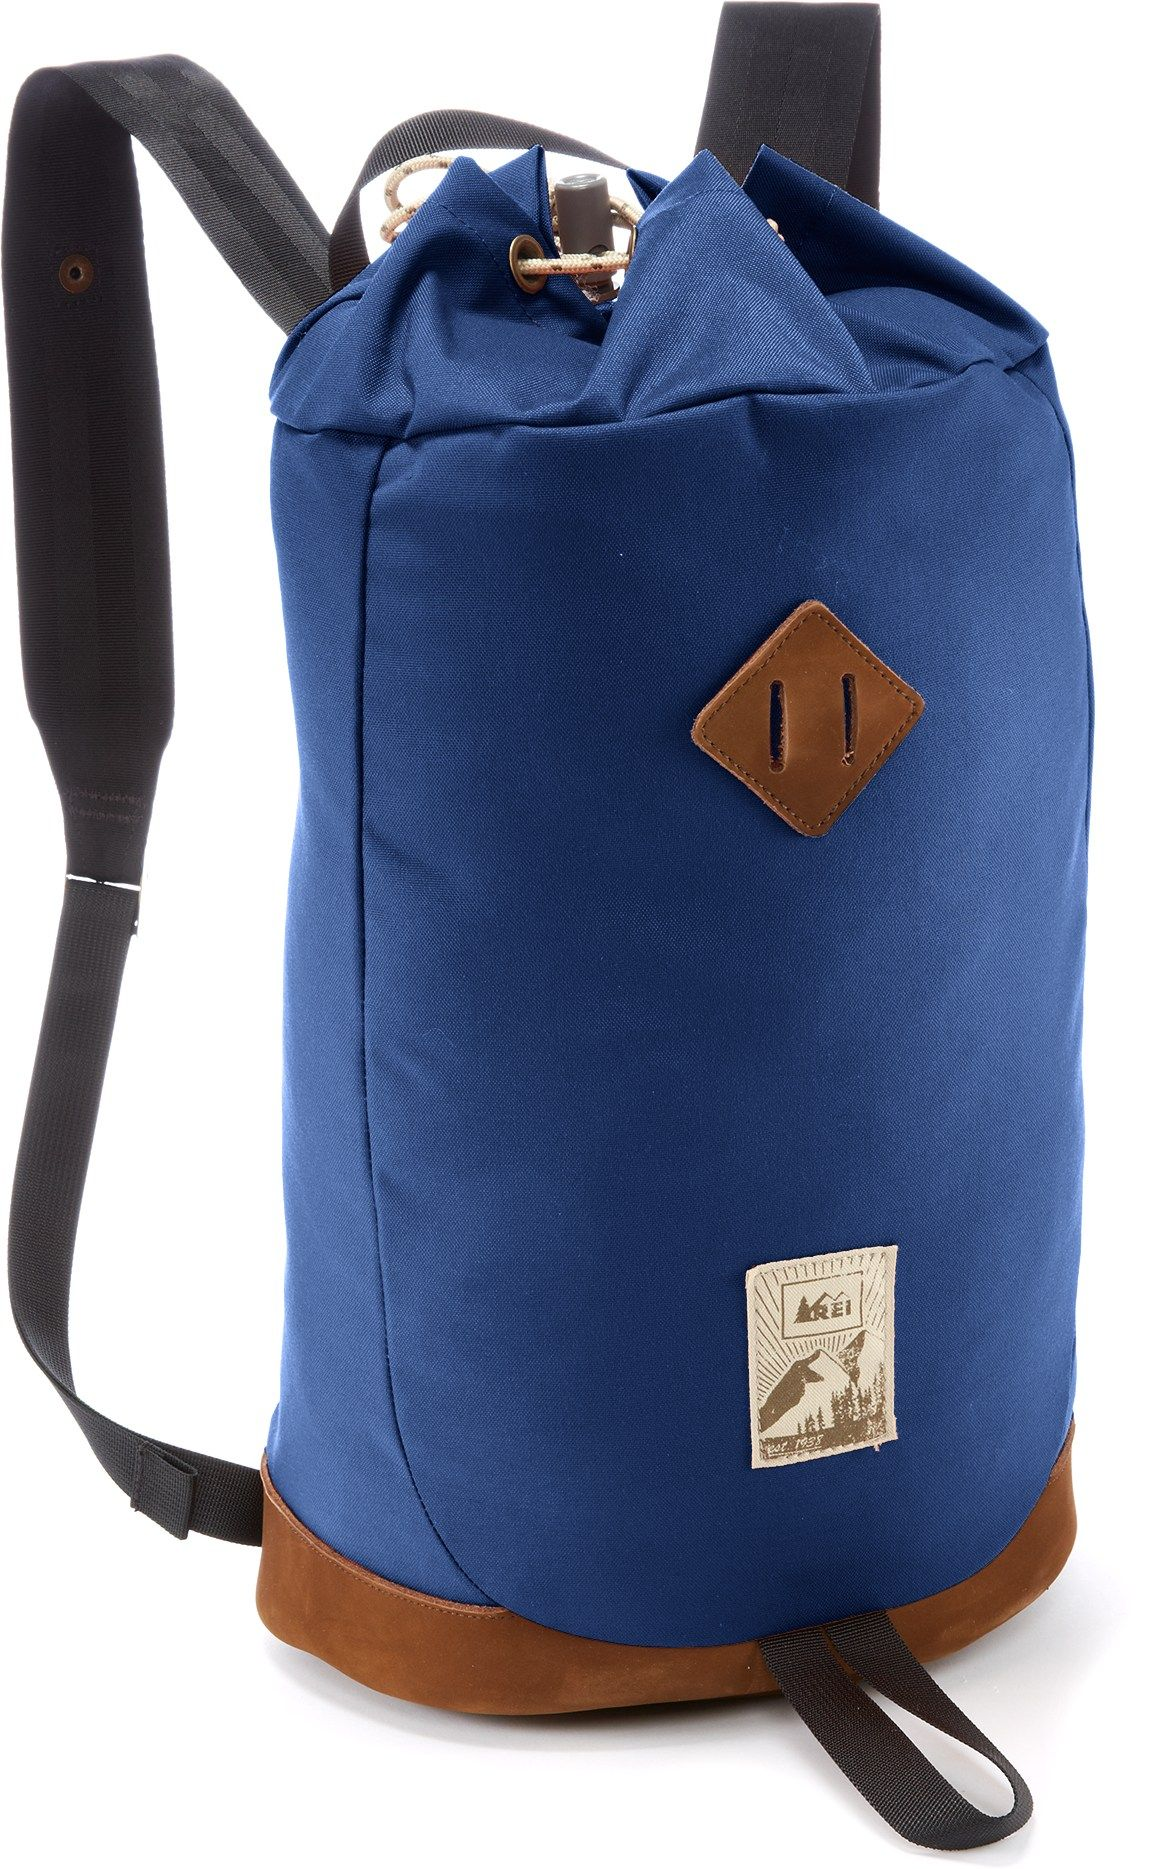 Rei Flashback Daypack Leather And Luggage Bags